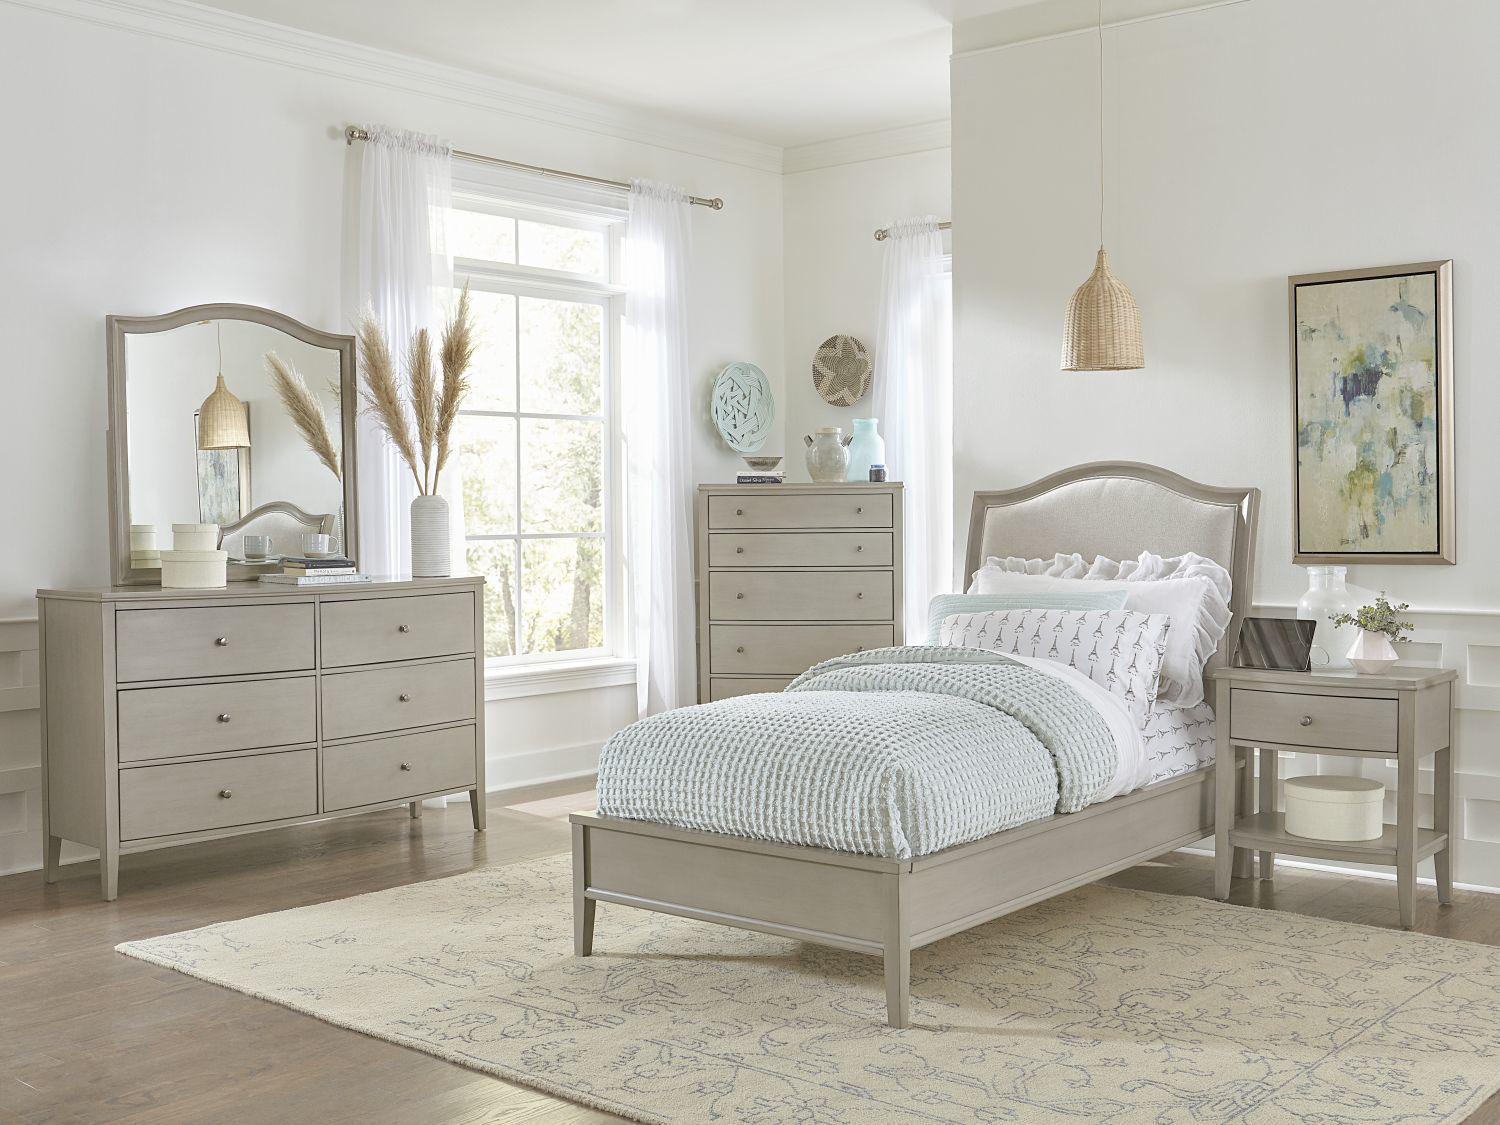 Picture of CHARLOTTE TWIN UPHOLSTERED BEDROOM SET